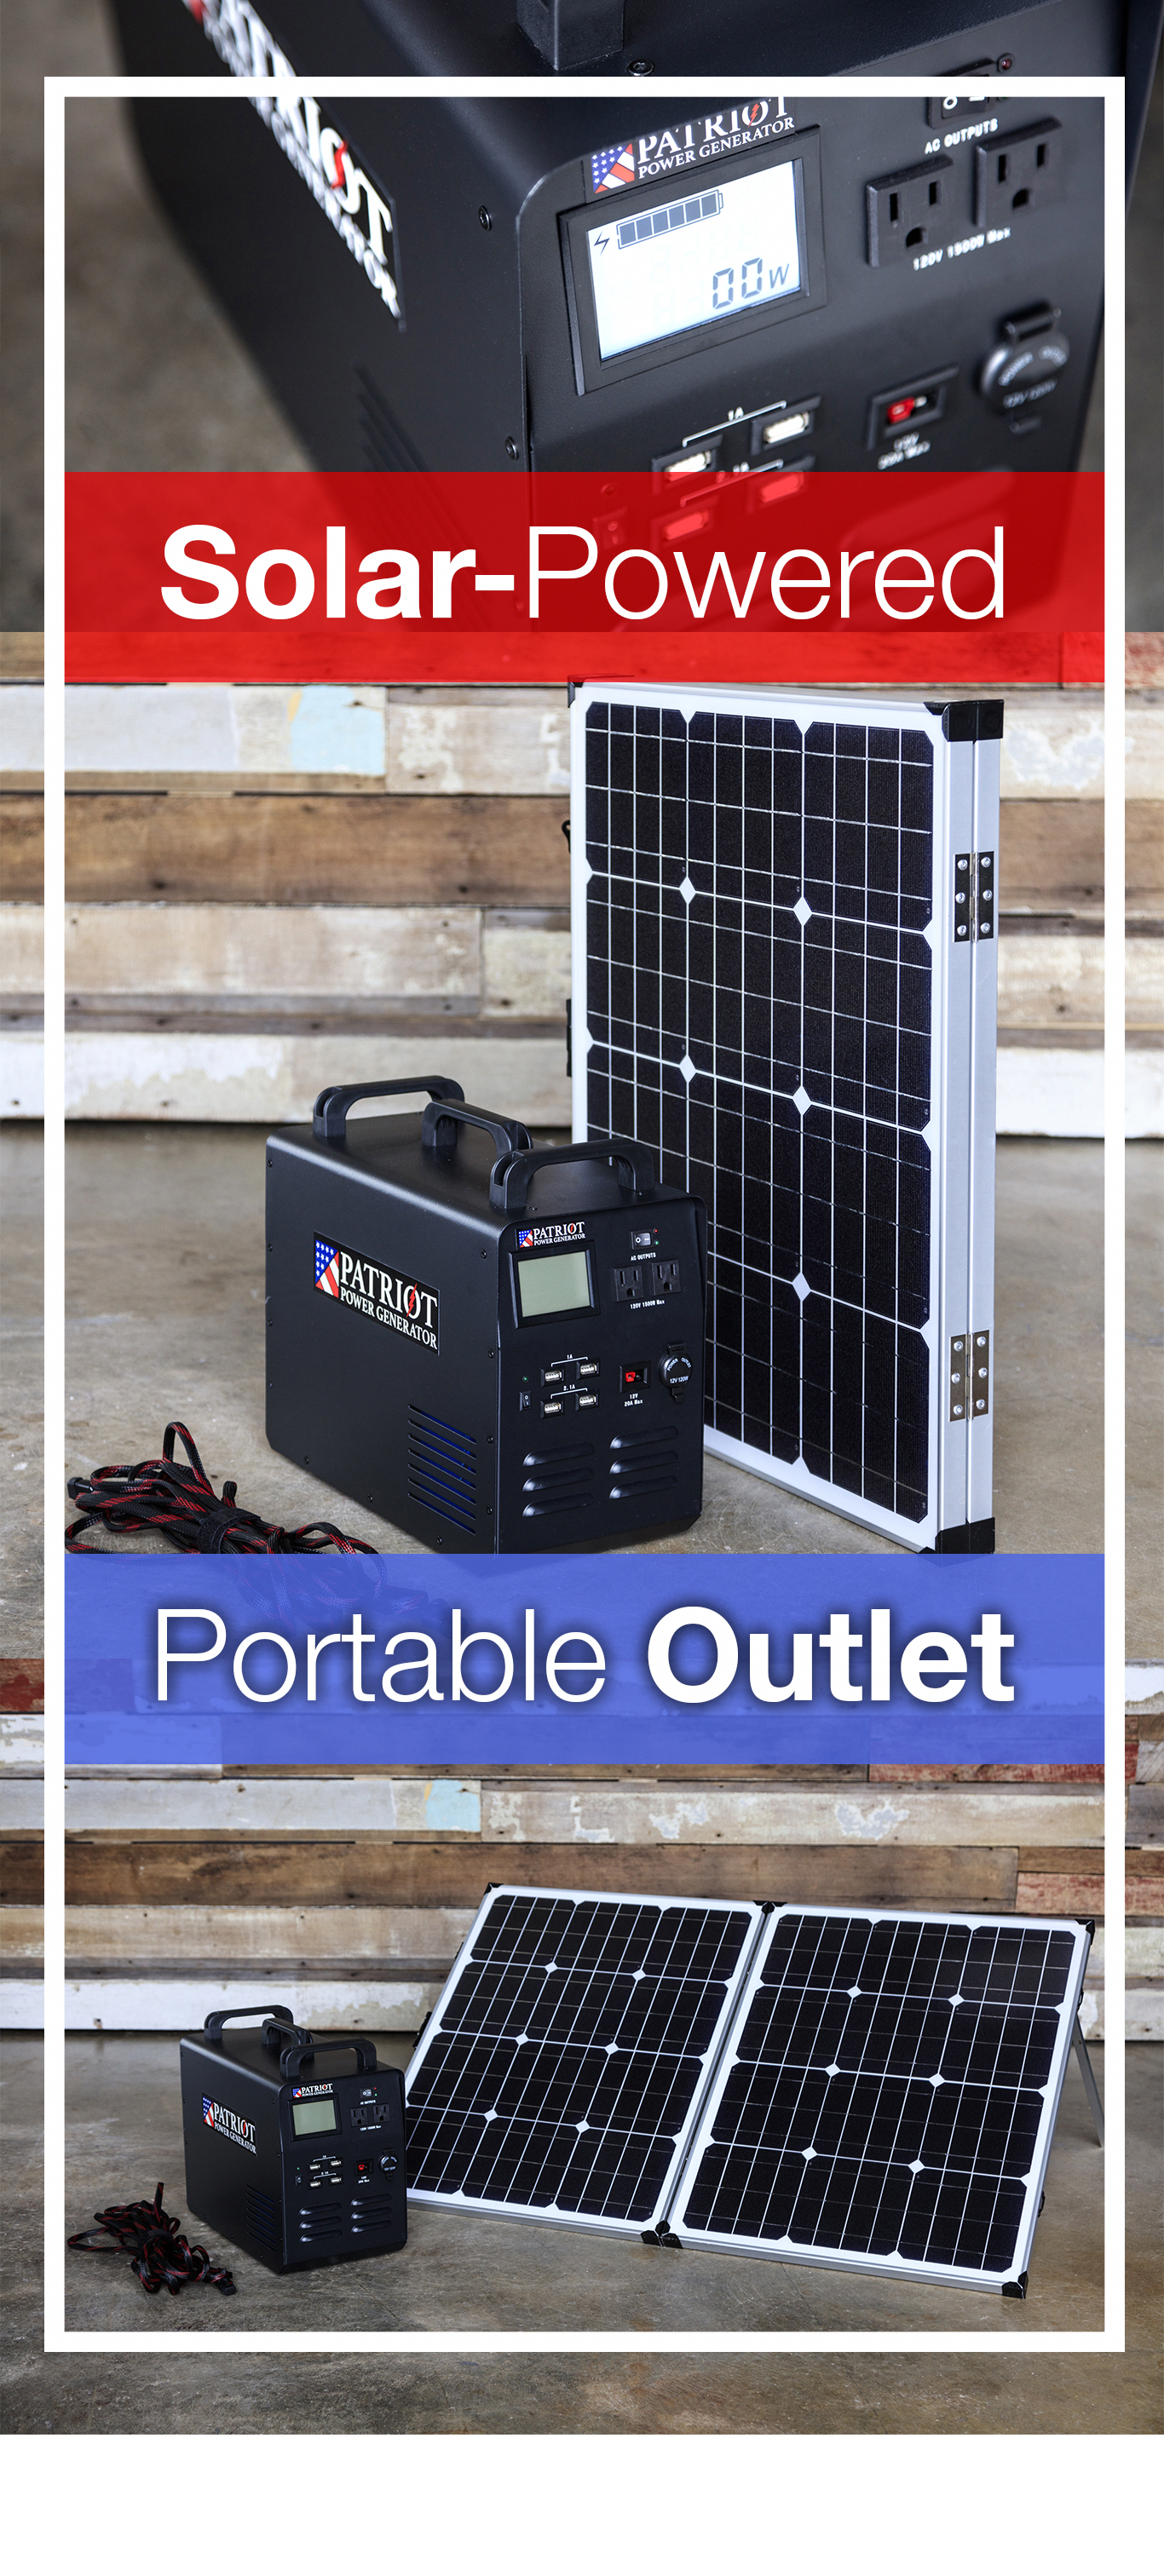 This Thing Can Power Just About Any Device You Can Plug Into A Standard Wall Outlet Including A Fridge It Even Best Solar Panels Solar Panels Solar Generator